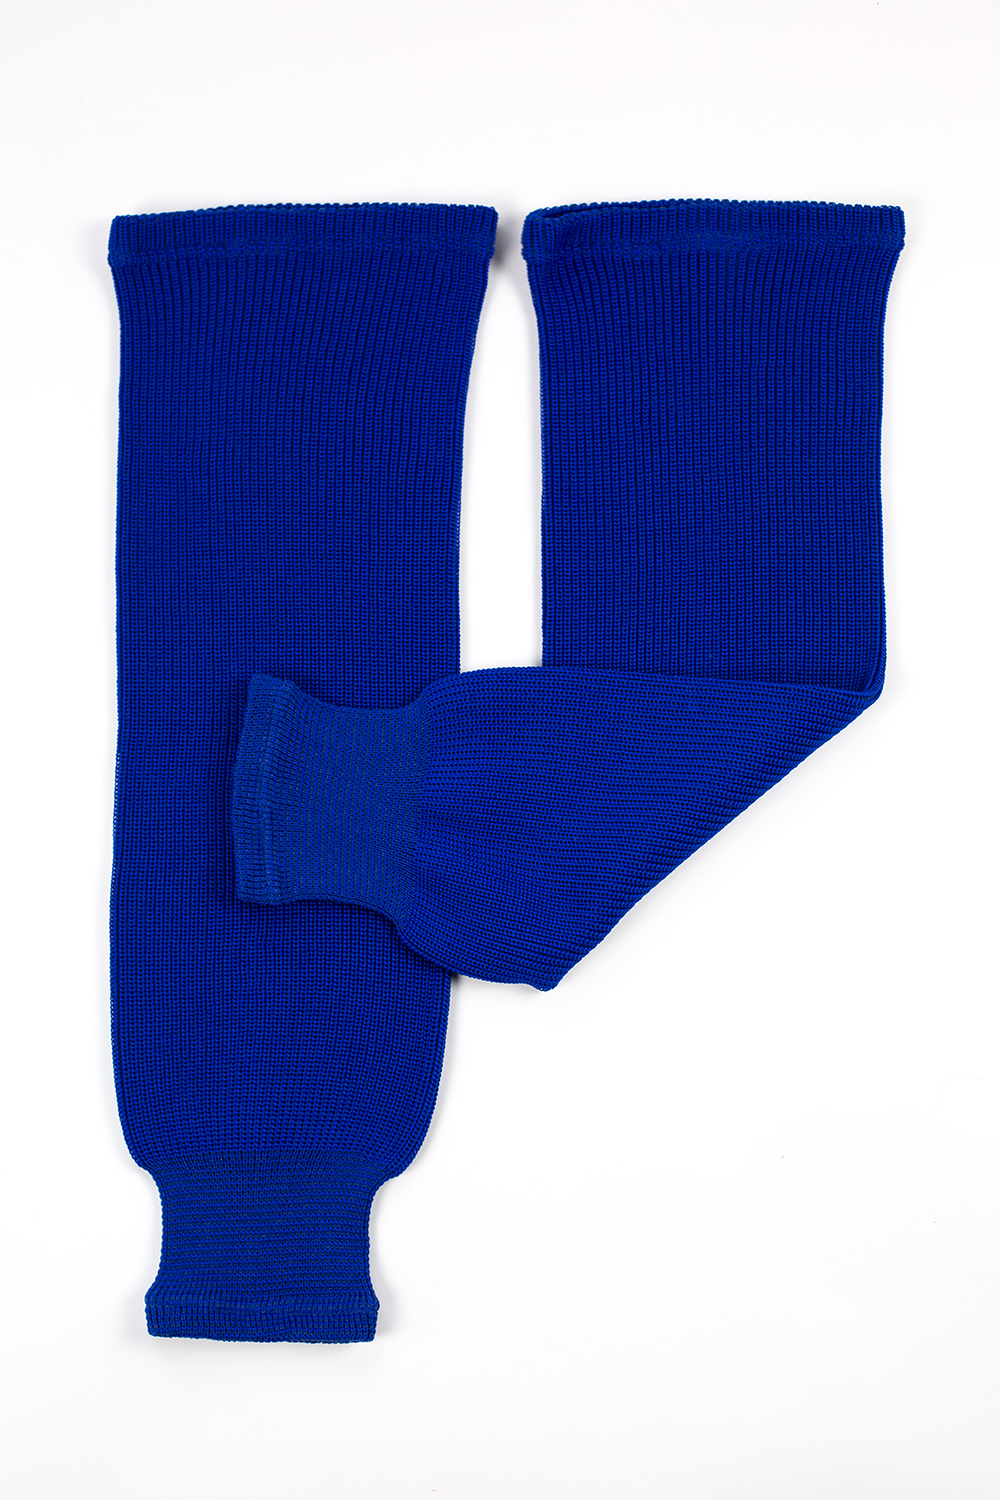 SOLID KNIT SOCKS -